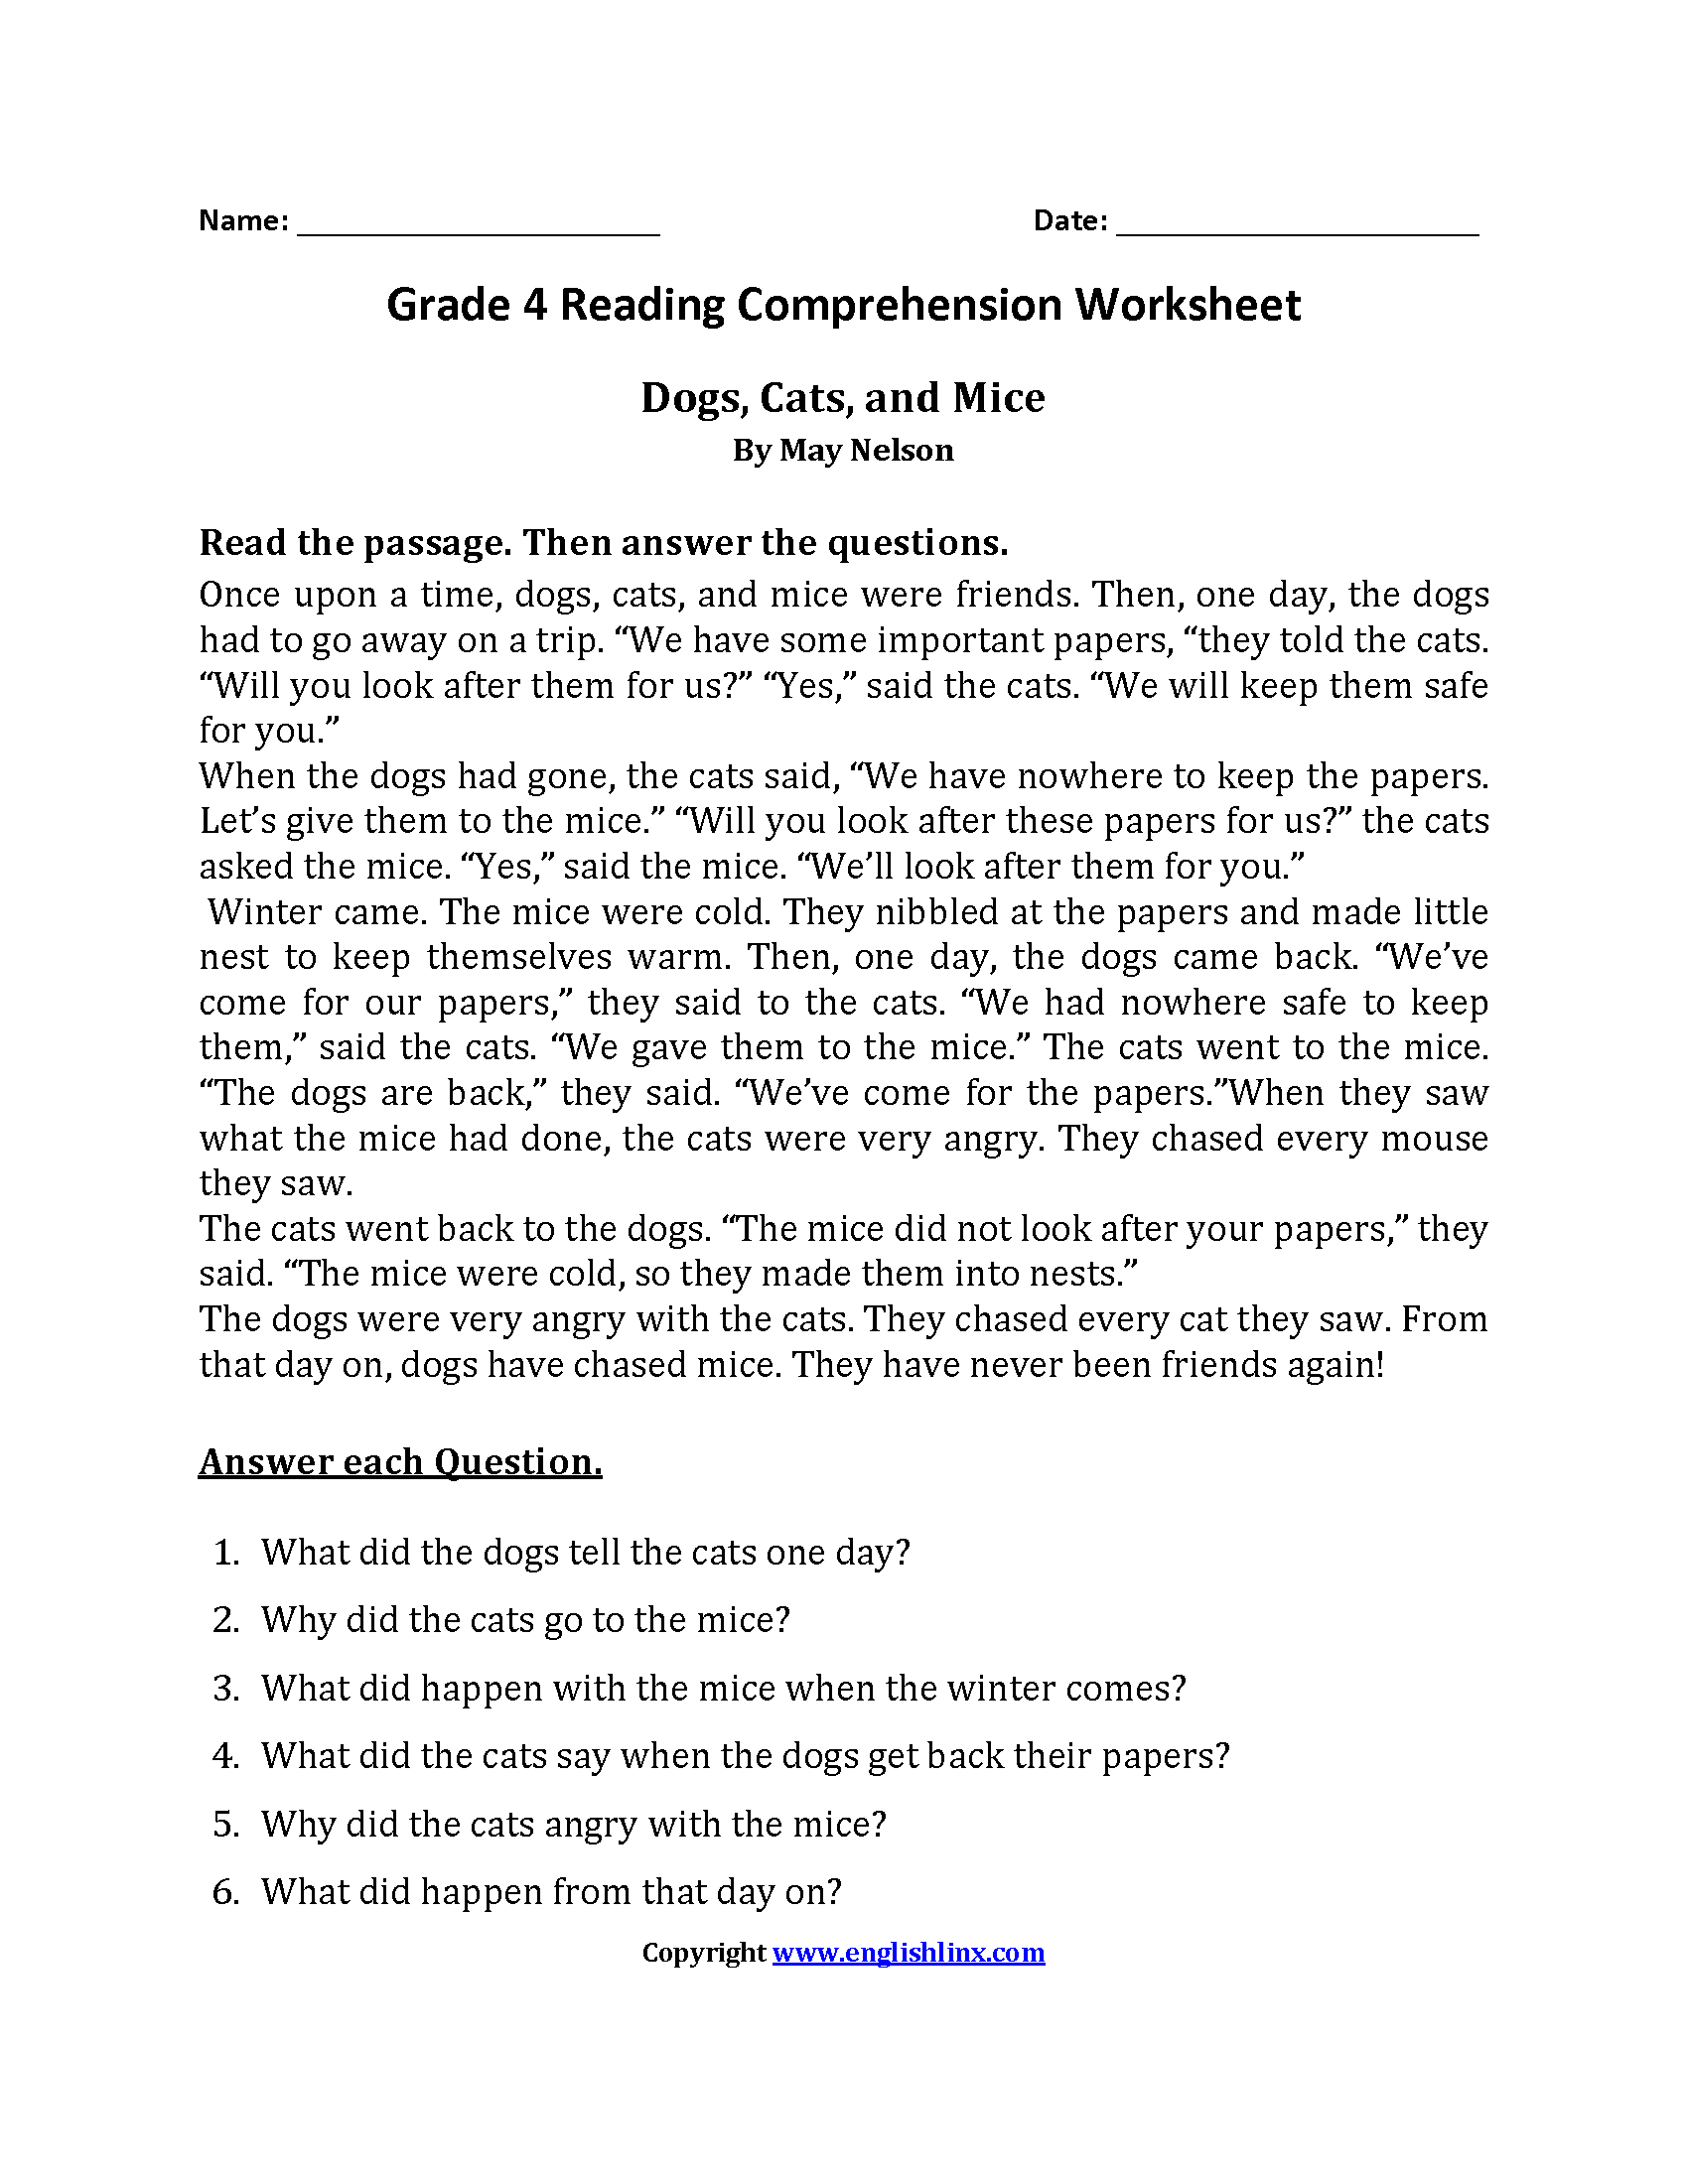 - Dogs, Cats And Mice Fourth Grade Reading Worksheets Reading